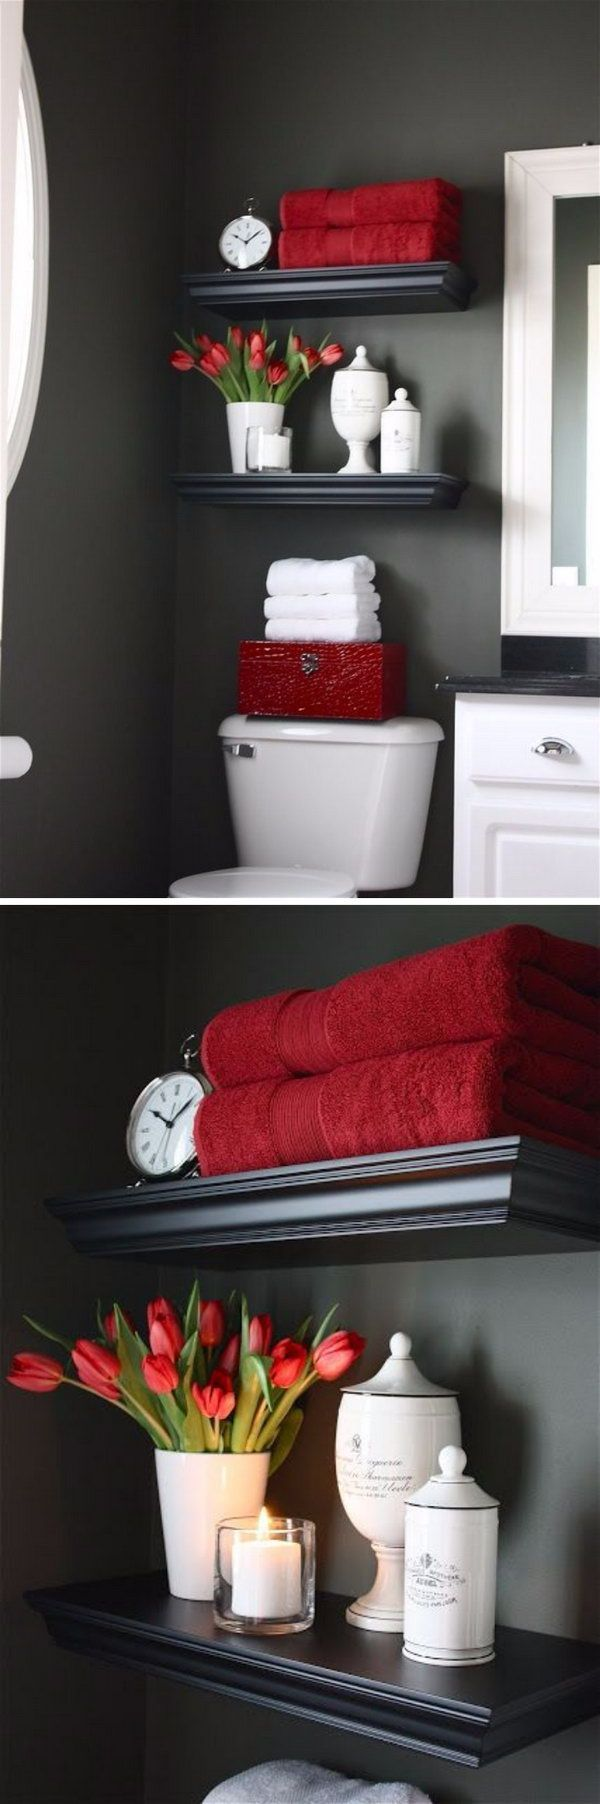 43 ideas for storing toilets for additional space #above …   – Badezimmer